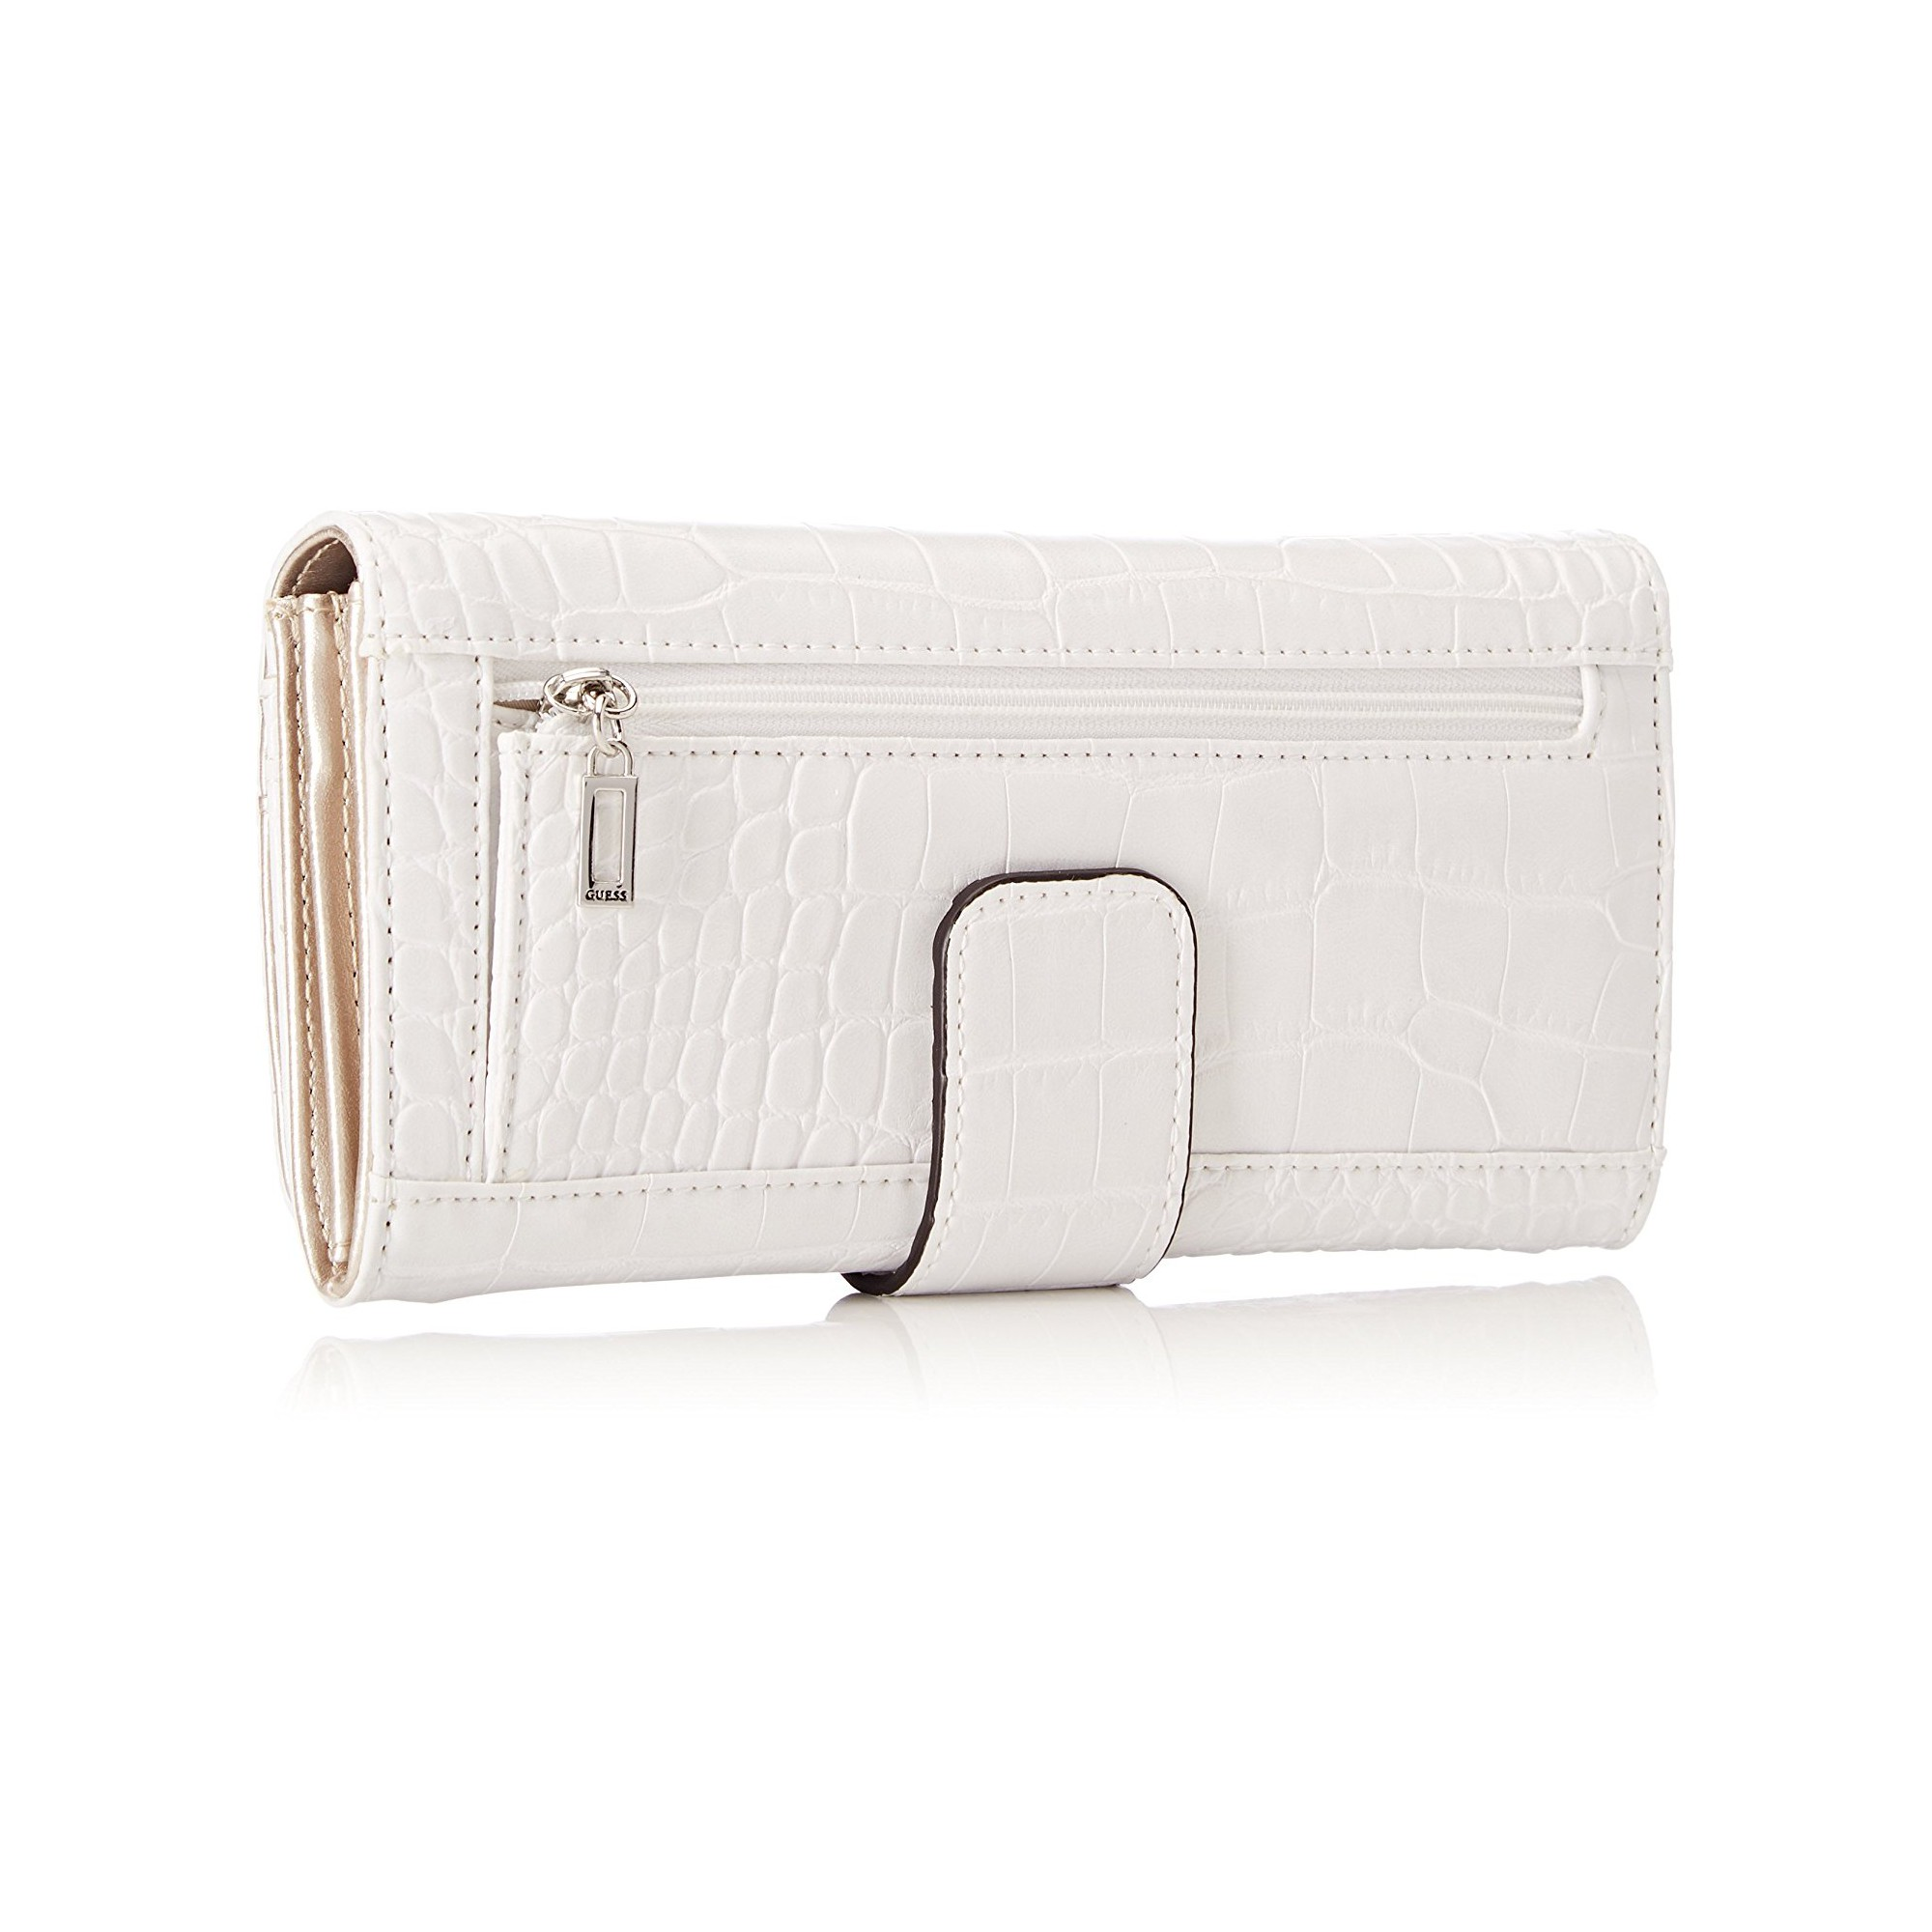 Guess Portefeuille Femme G Lux Blanc